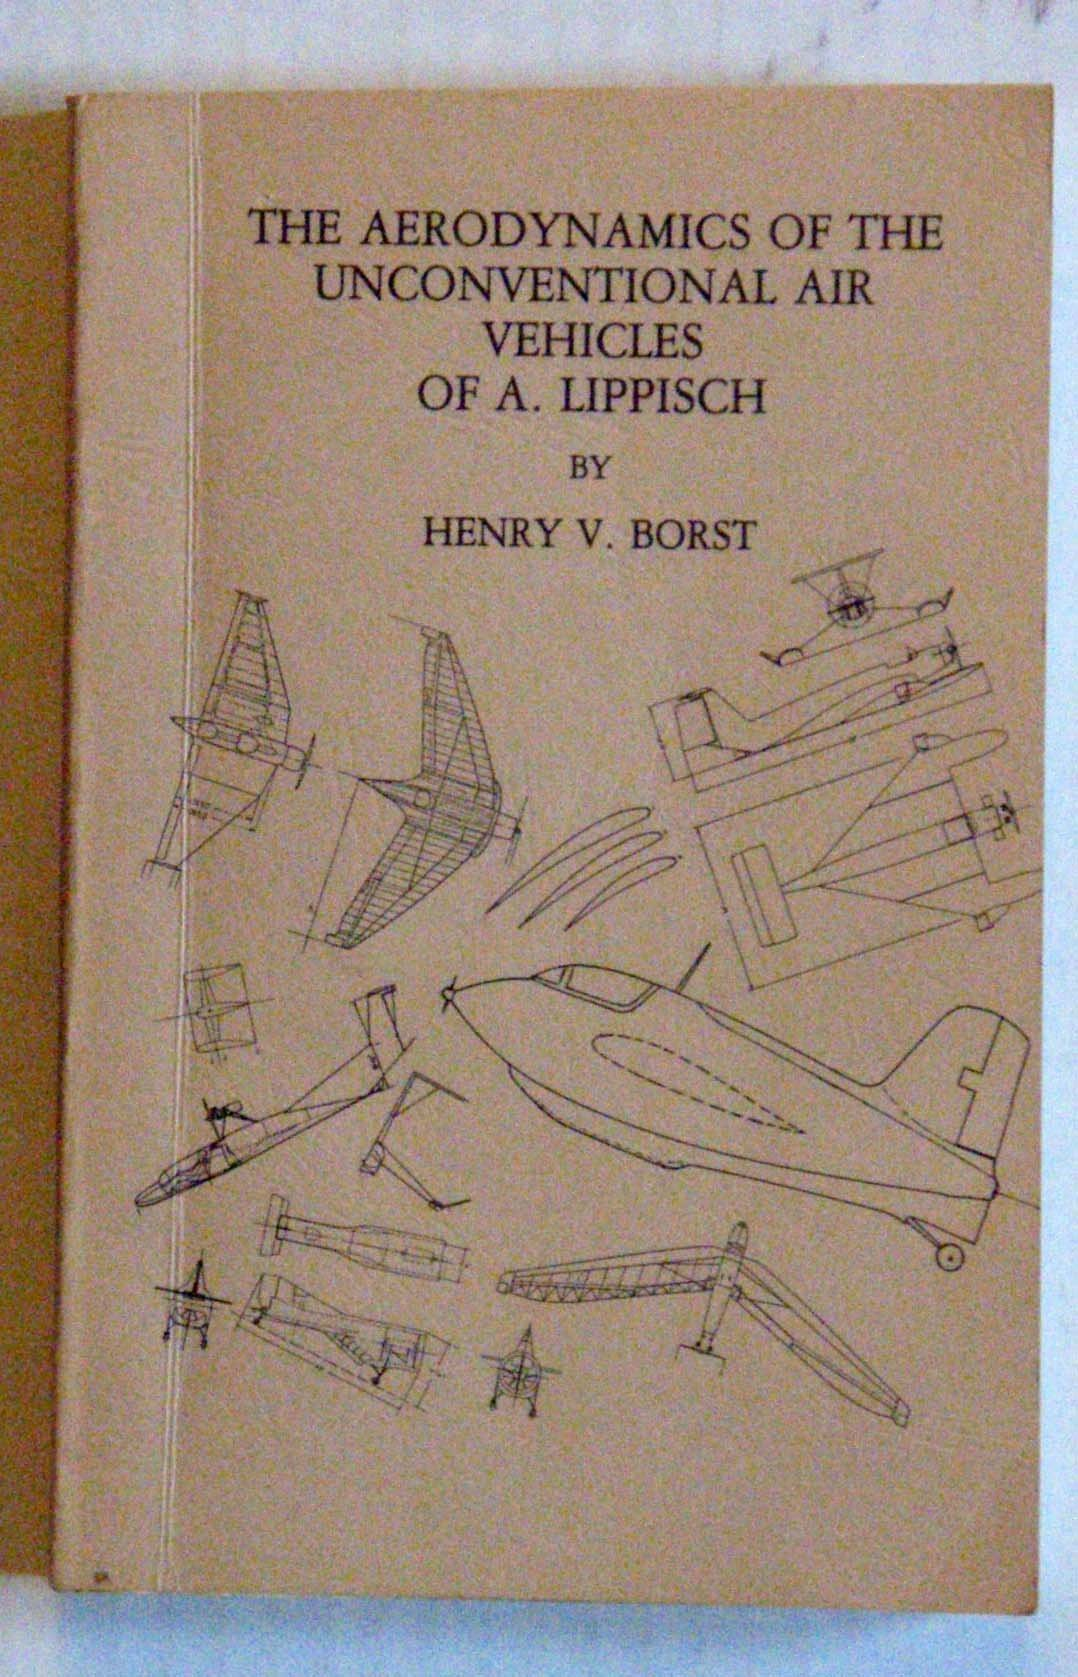 Aerodynamics of The Unconventional Air Vehicles 0f A. Lippisch, The